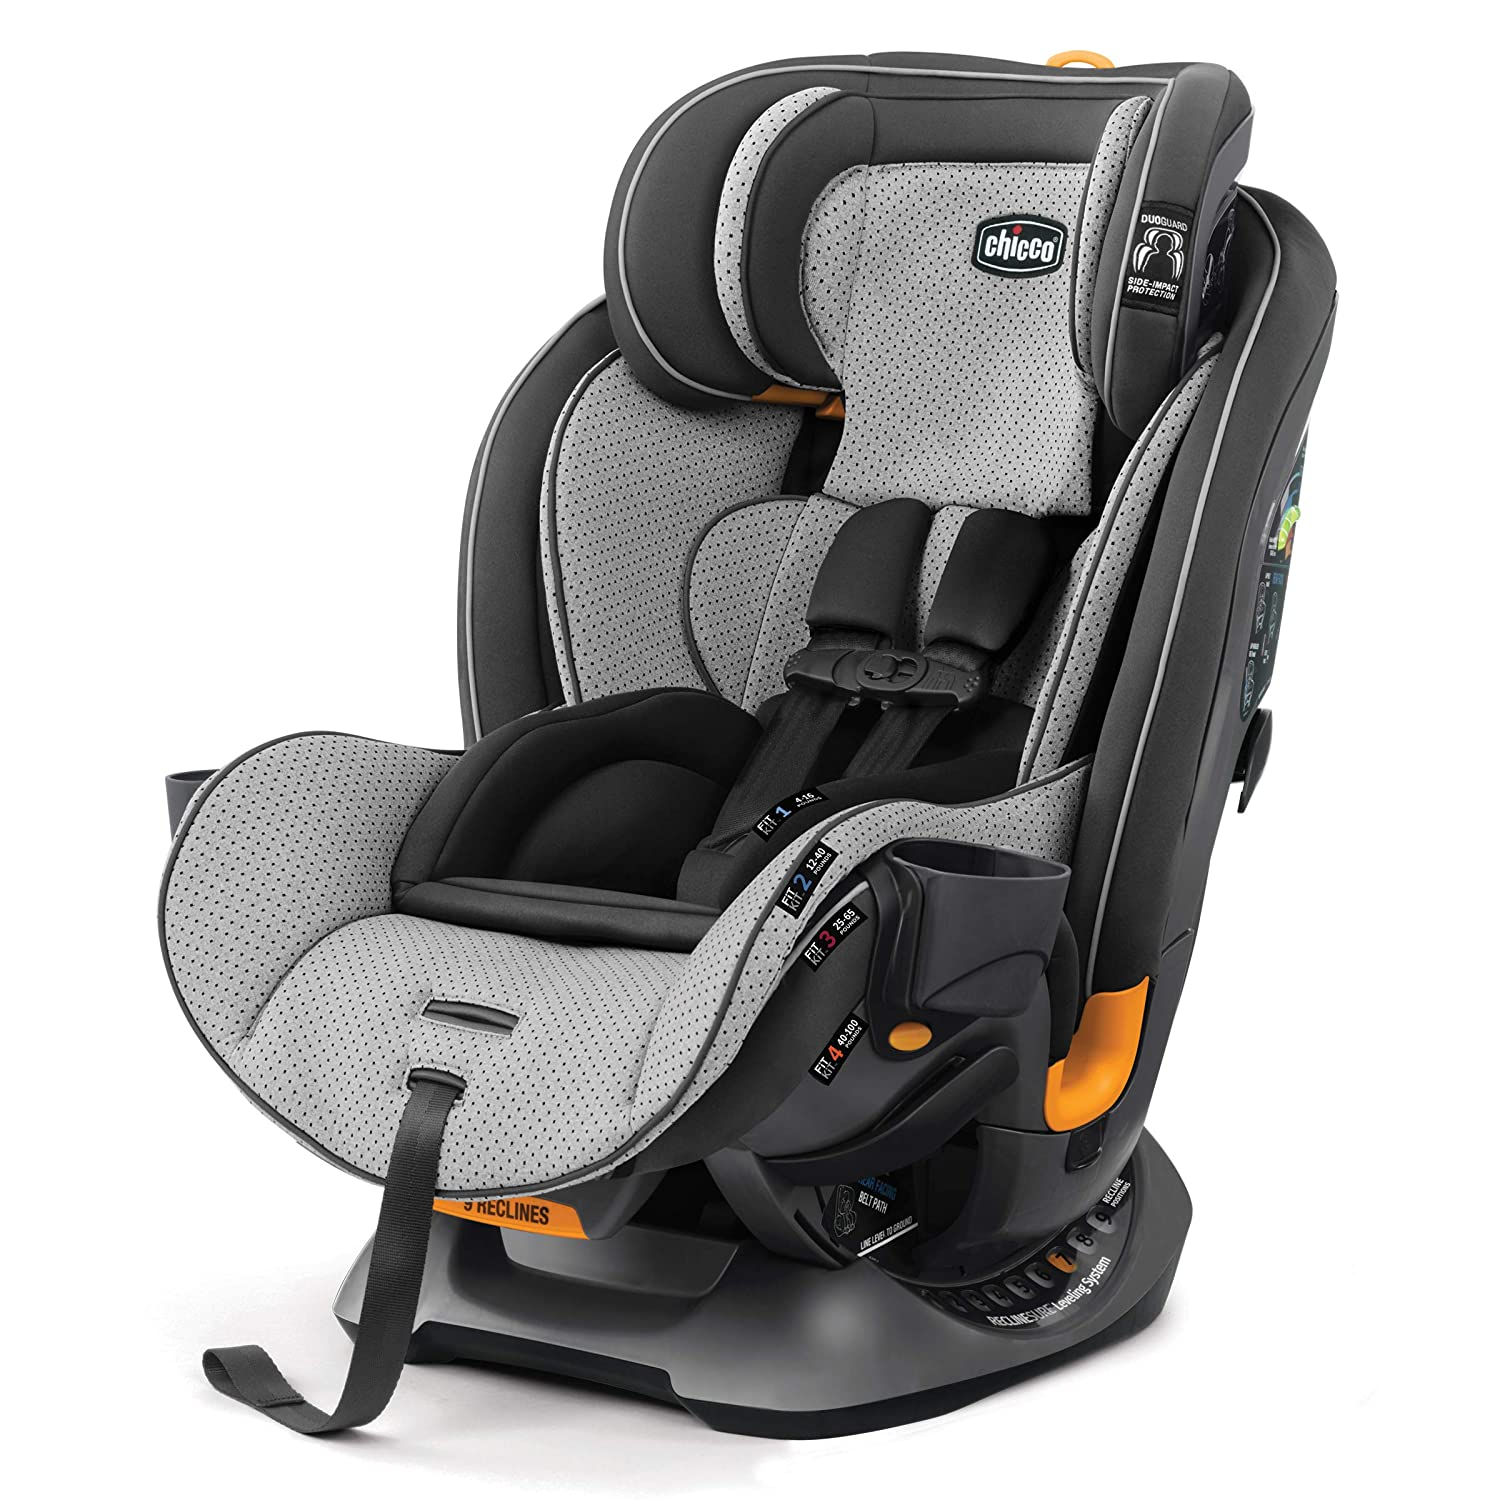 Amazon Com Chicco Fit4 4 In 1 Convertible Car Seat Easiest All In One From Infant To Booster 10 Years Of Use Stratosphere Baby